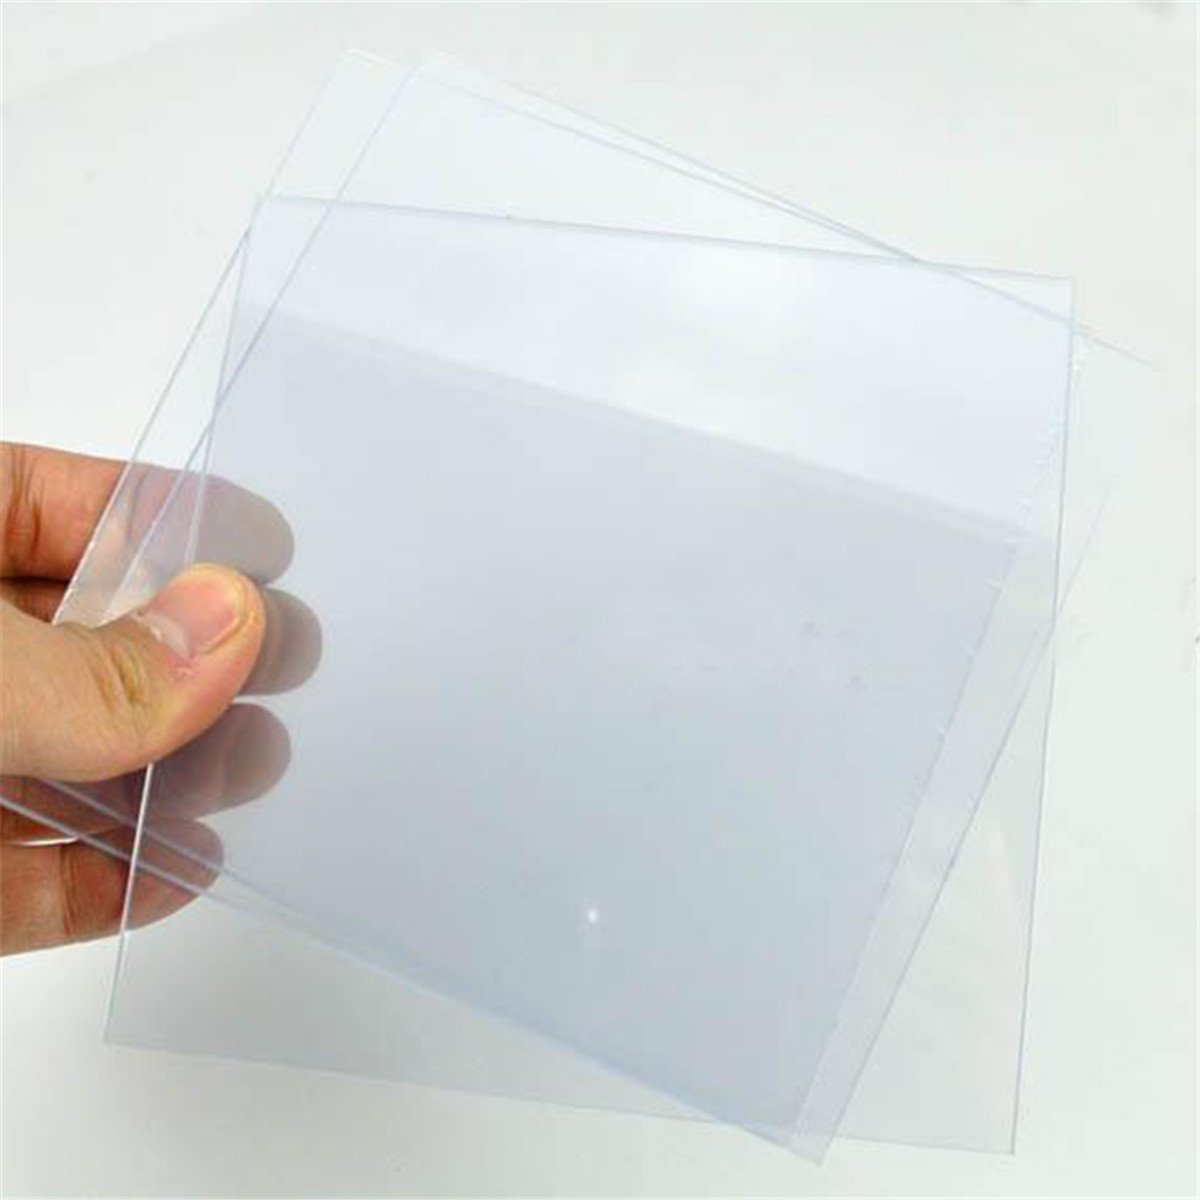 Dental Lab Vacuum Forming Plastic Sheets Thermoforming Plastic Sheet Splint Material Hard 20pcs